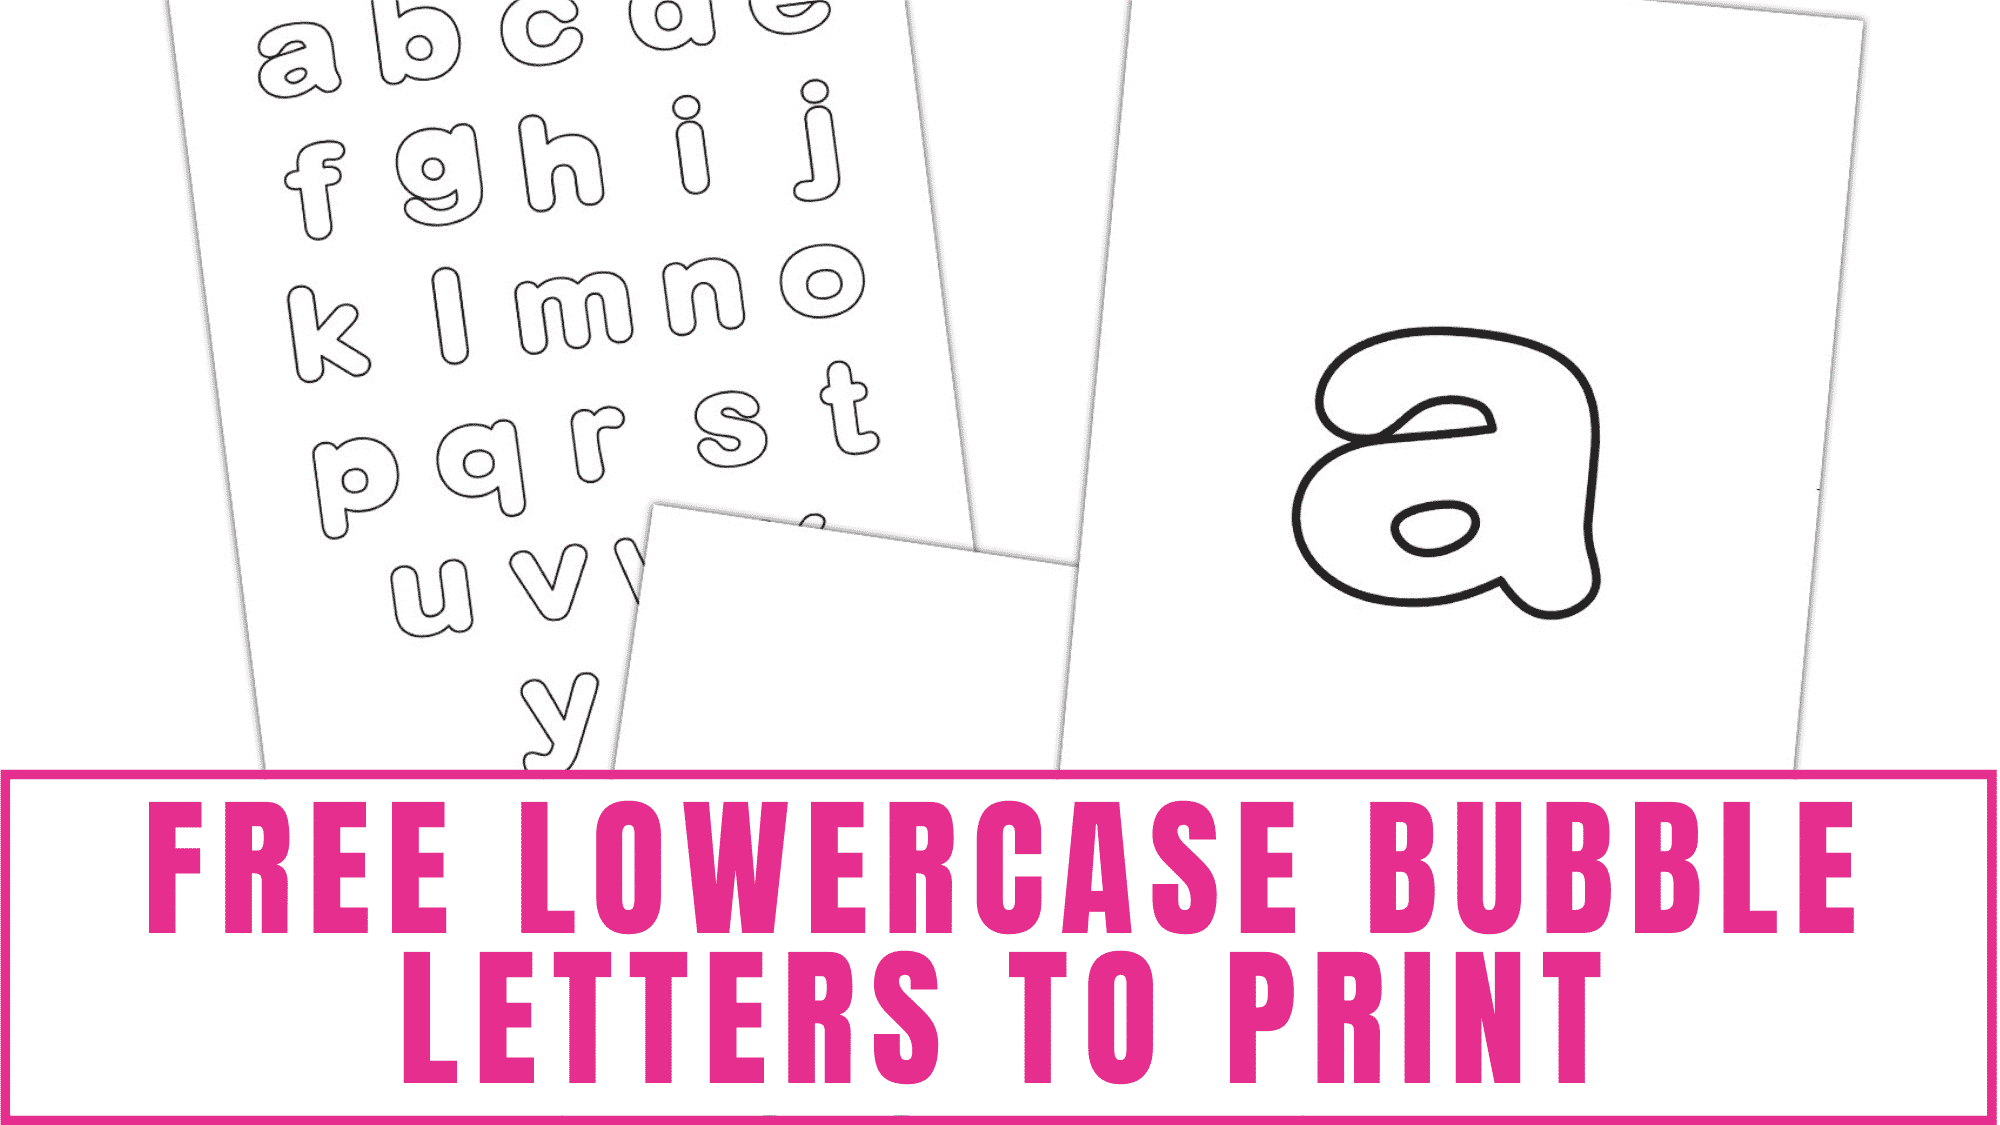 In addition to learning uppercase or capital letters, kids need to learn lowercase letter recognition and lowercase letter tracing. These free lowercase bubble letters to print can be great templates for tracing letters of the alphabet.